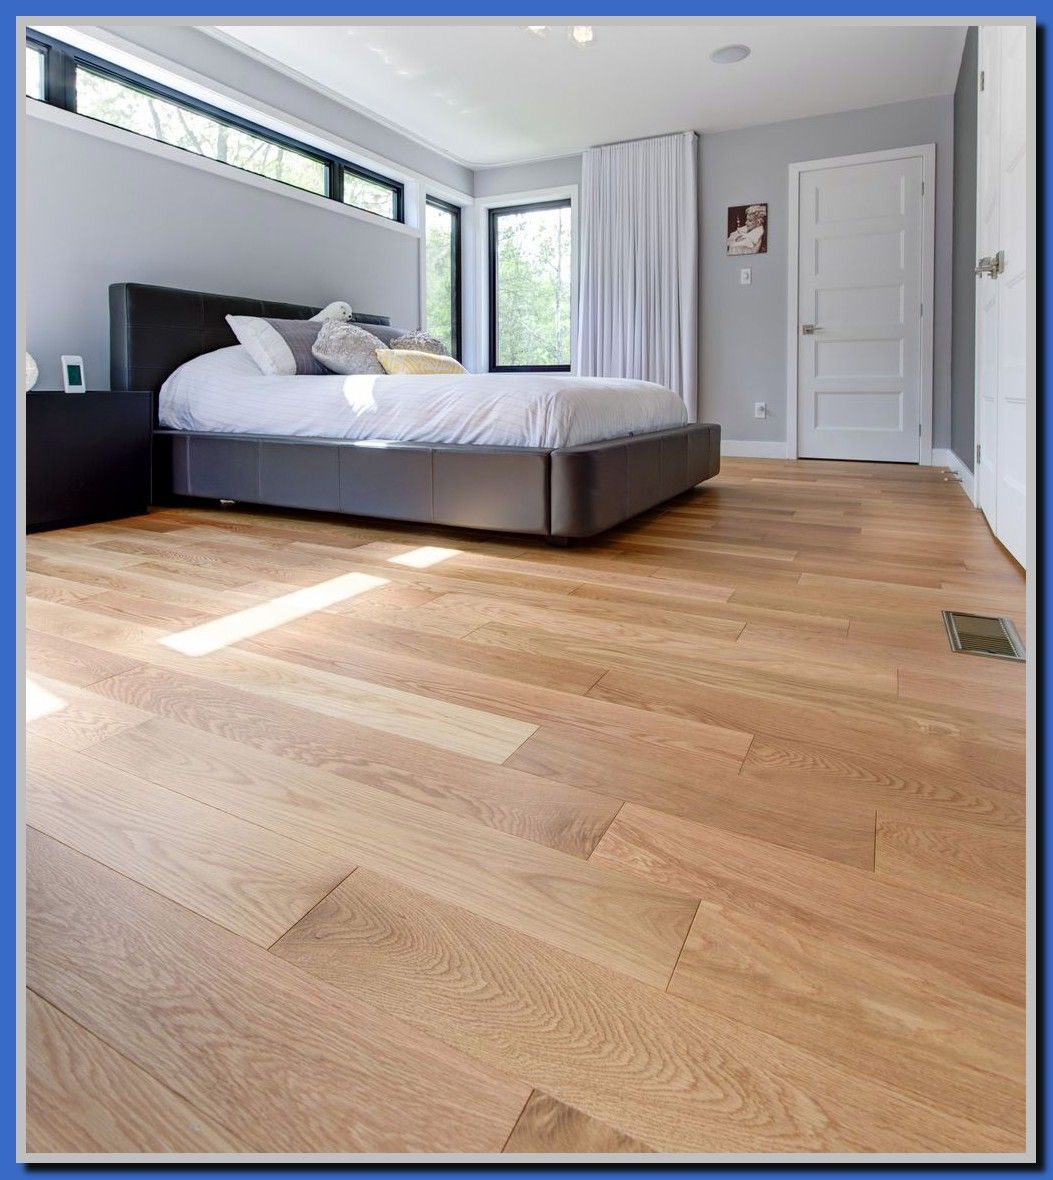 59 Reference Of Floor Timber Bedroom In 2020 Wood Floors Wide Plank Hardwood Floors Hardwood Bedroom